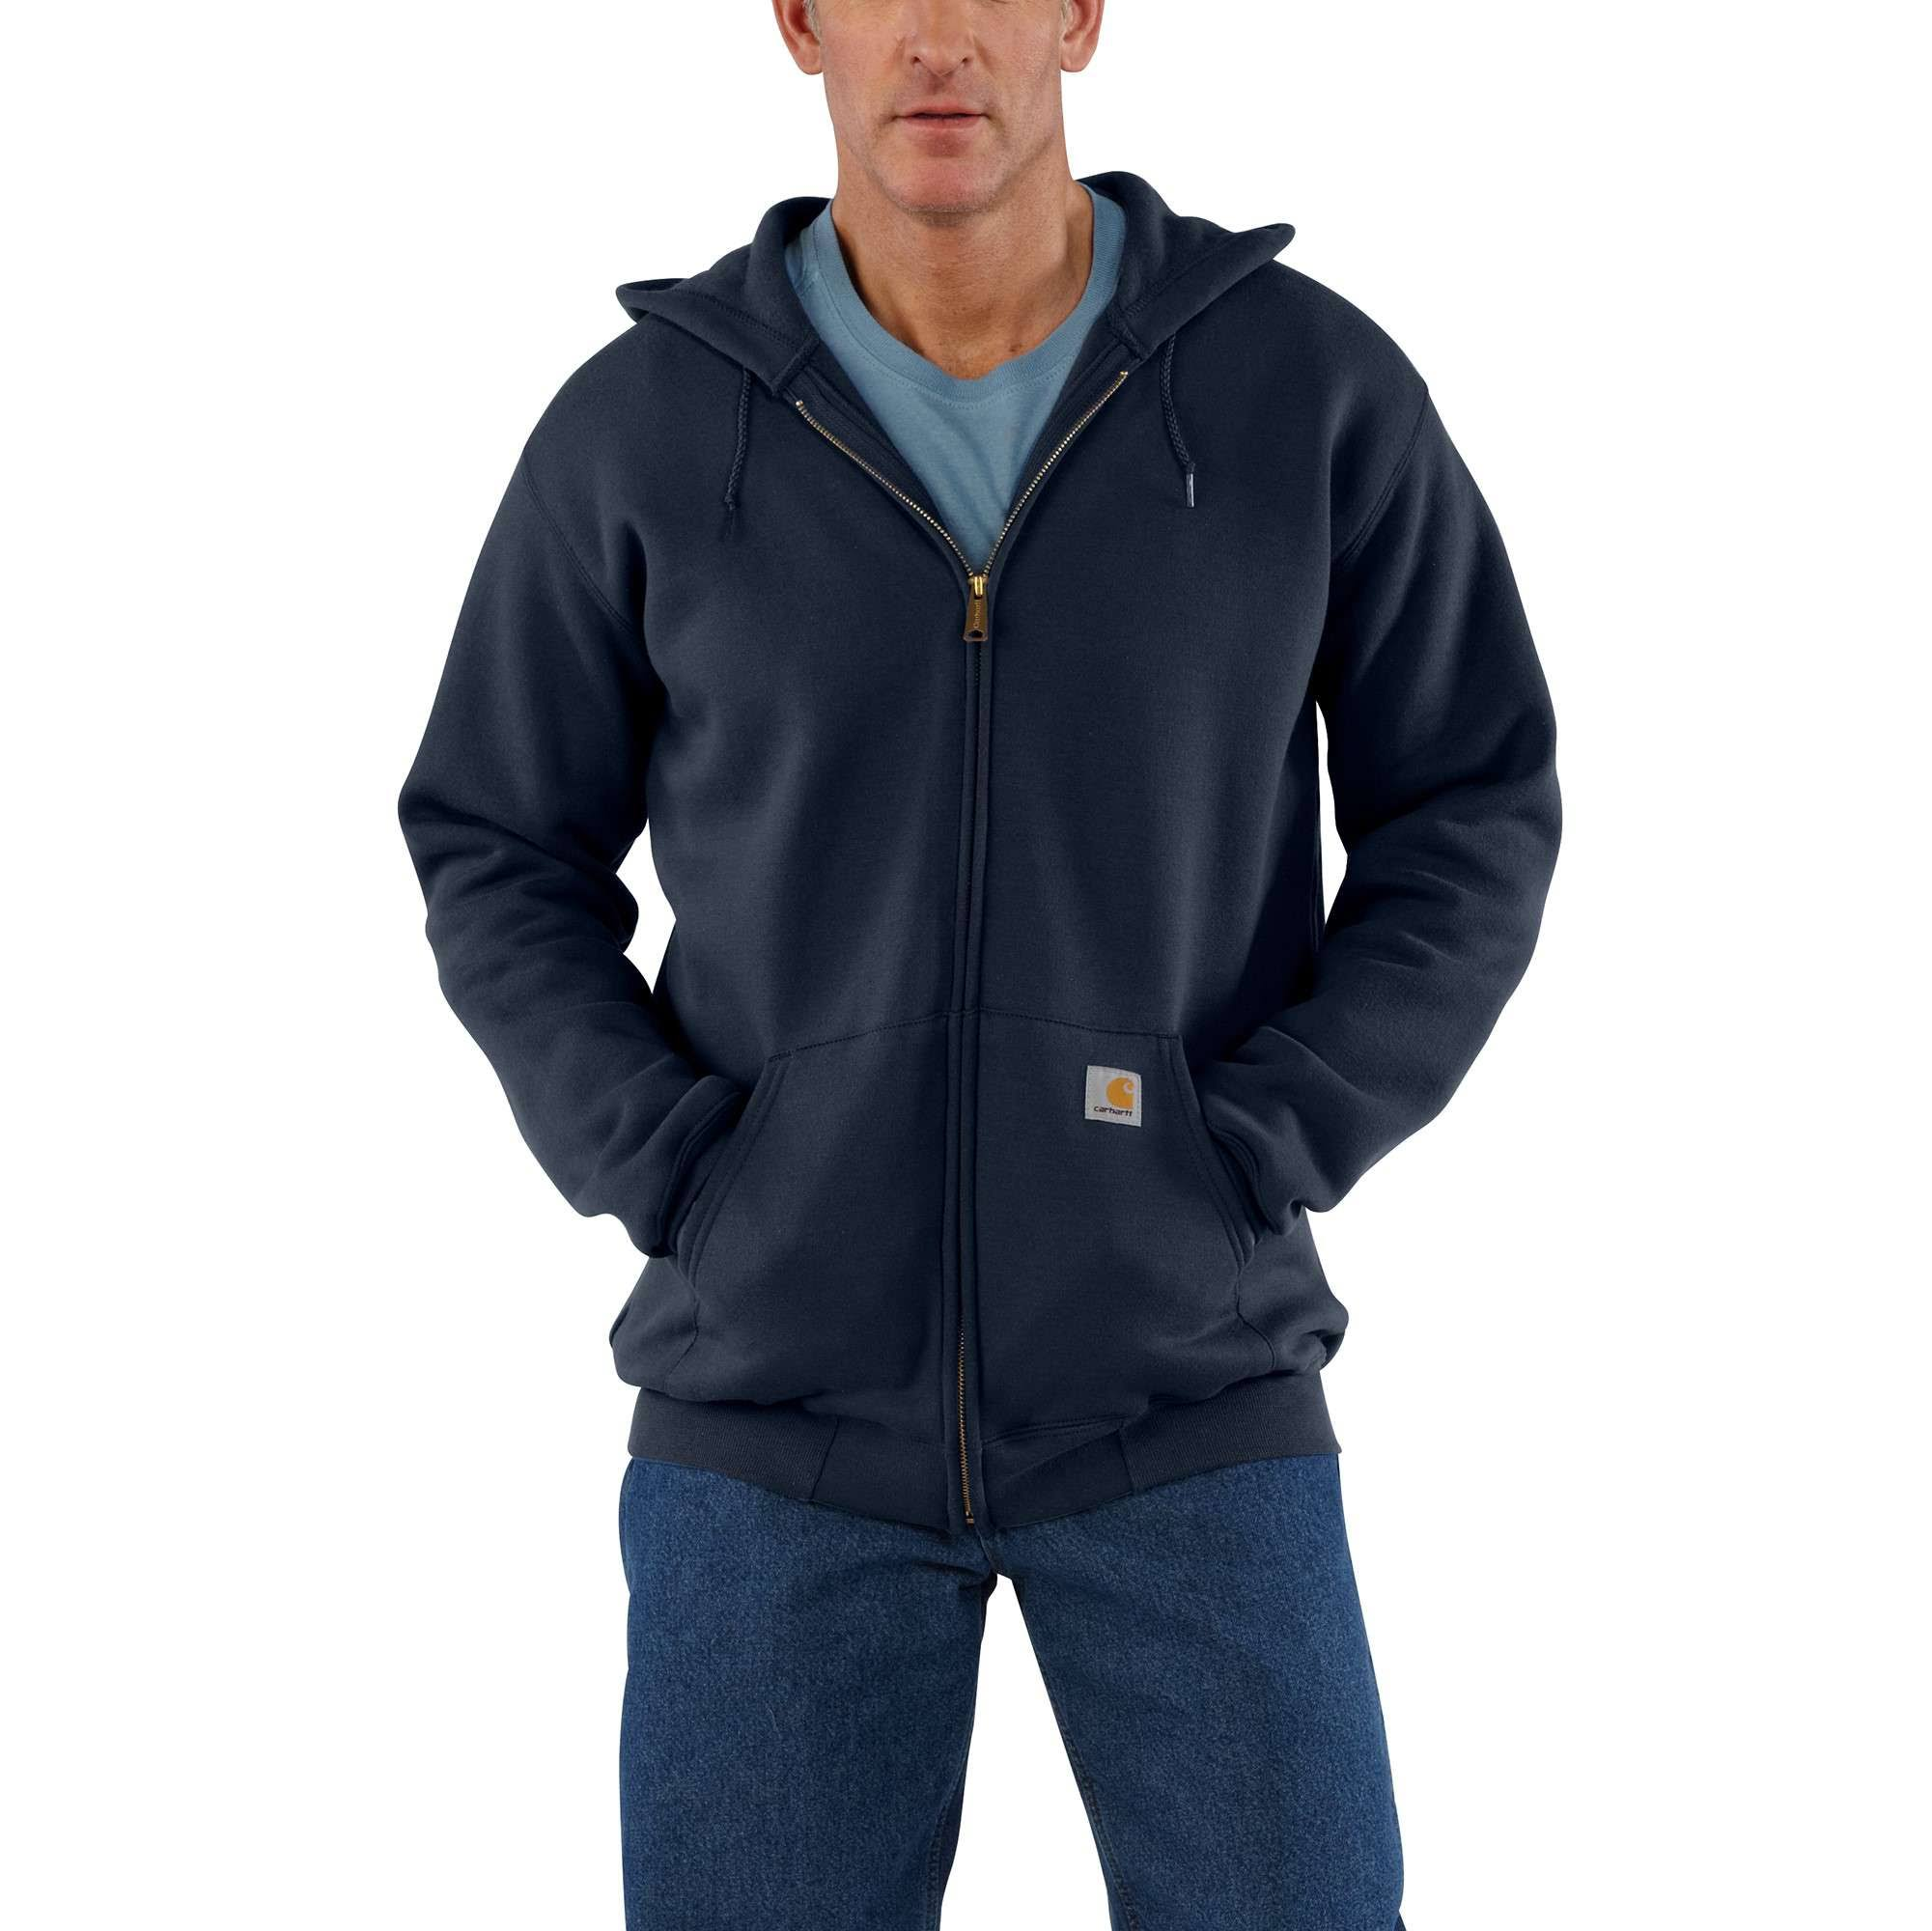 Carhartt Men's Midweight Hooded Zip-Front Sweatshirt - Navy